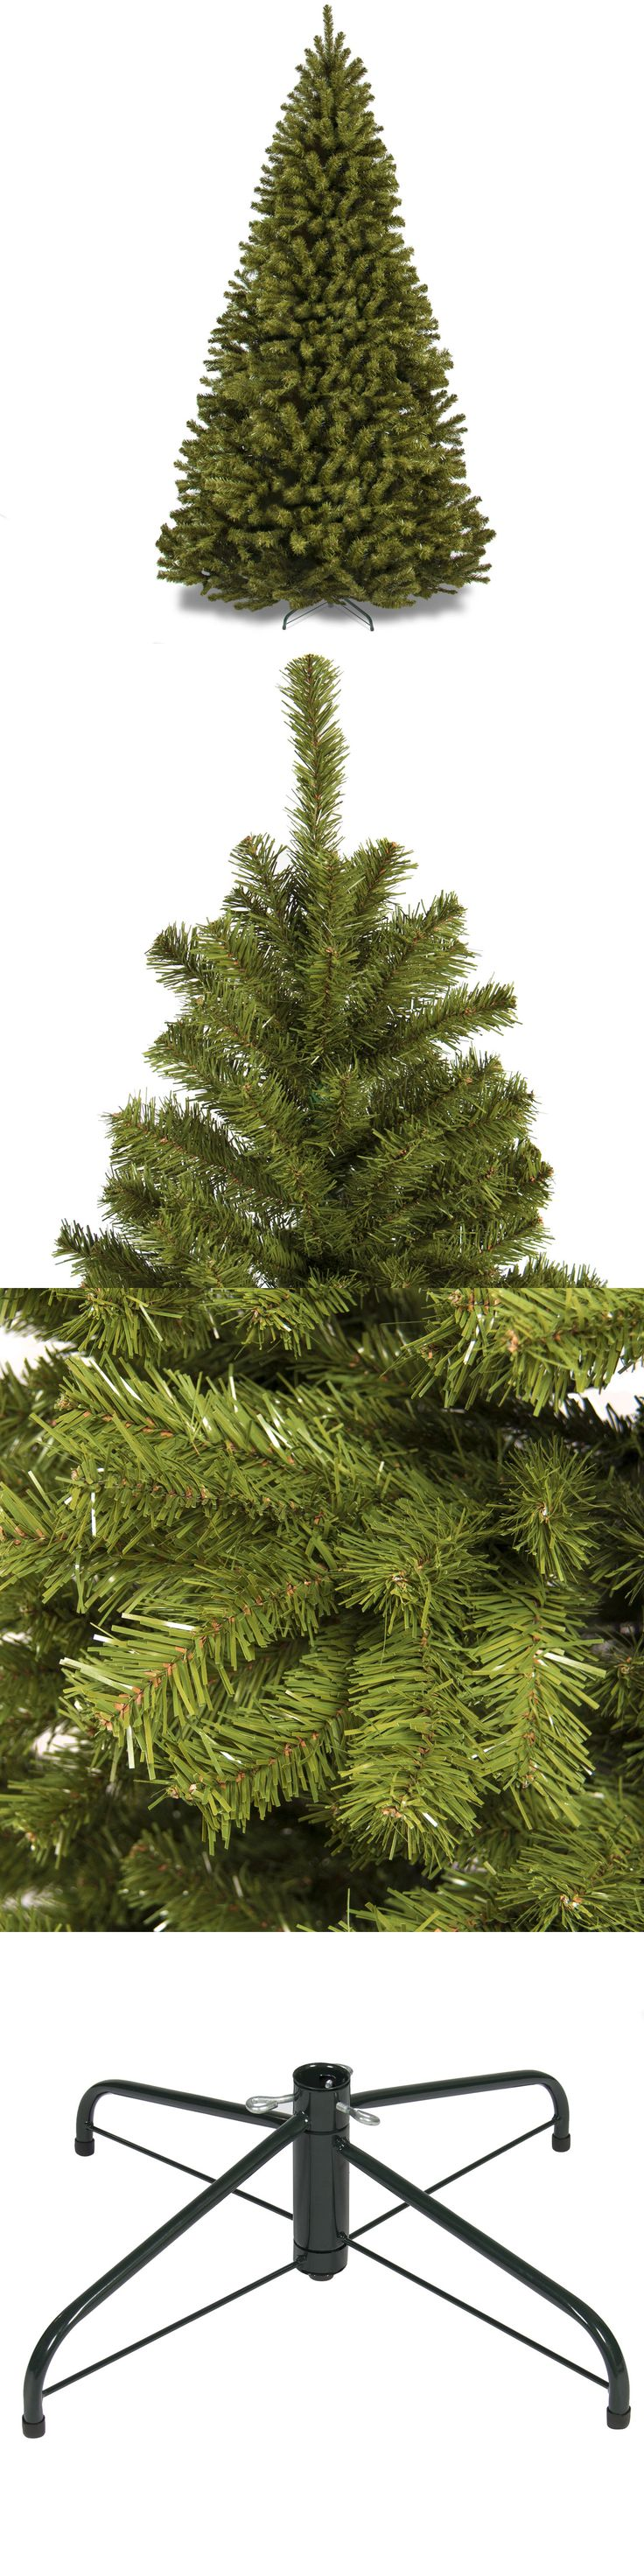 Artificial Christmas Trees 117414: 7.5 Ft. Premium Spruce Hinged Artificial Christmas Tree Holiday Decor With Stand -> BUY IT NOW ONLY: $99.99 on eBay!